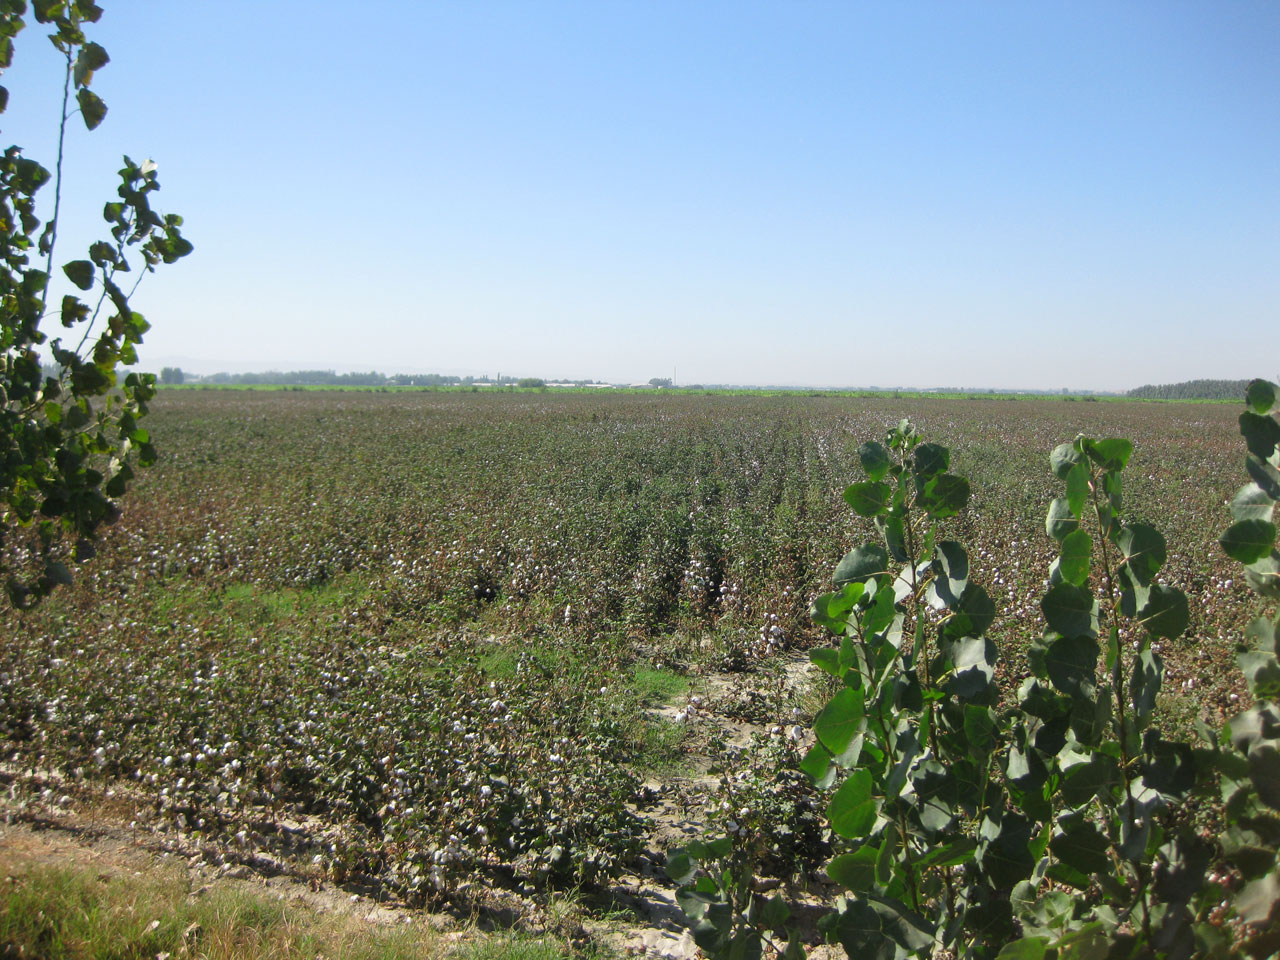 Cotton fields near Bukhara, Uzbekistan